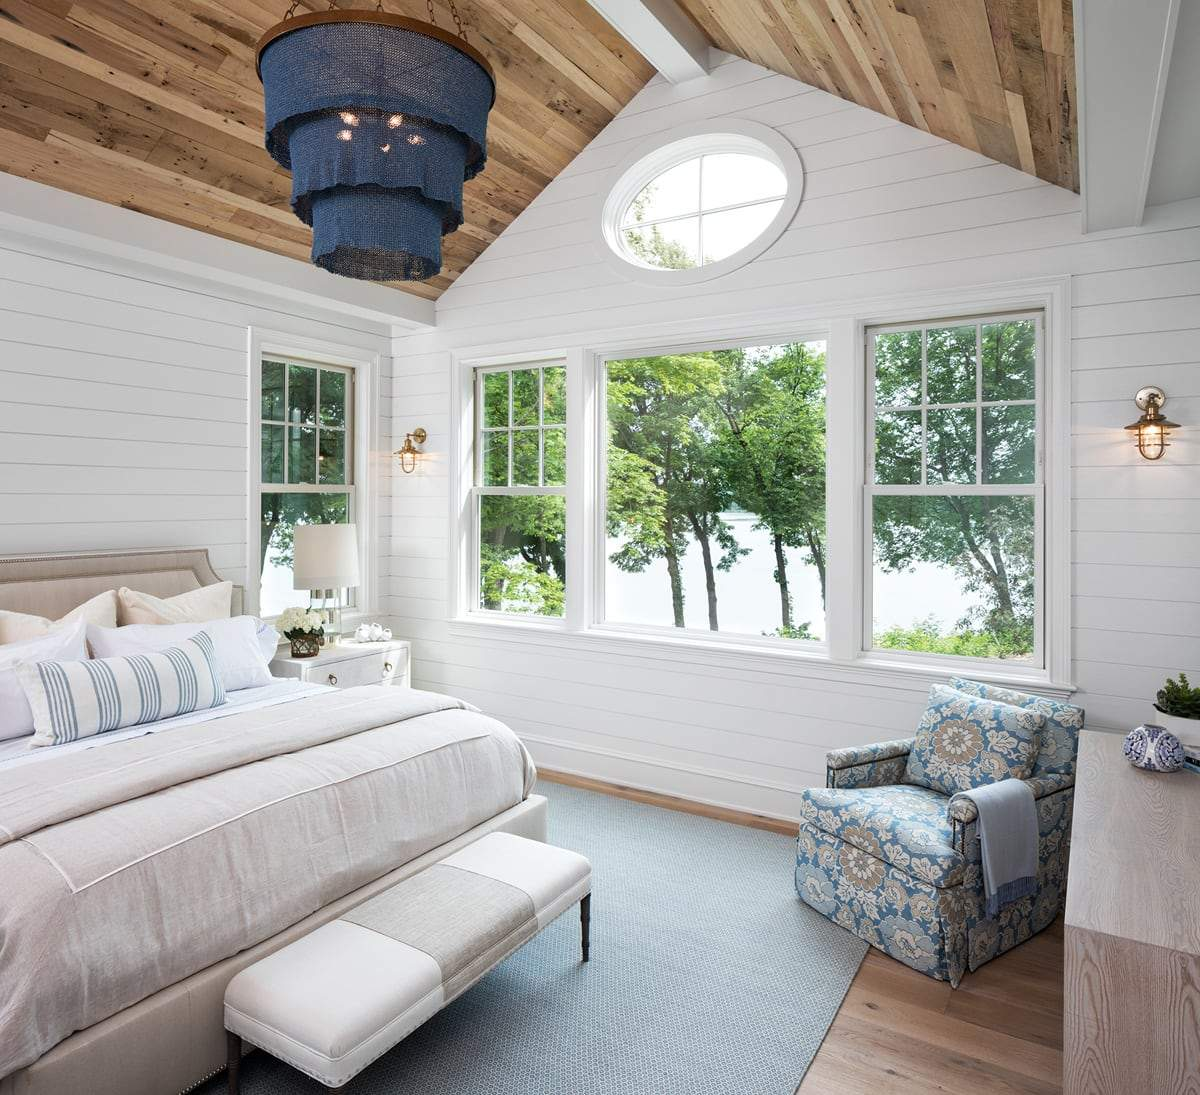 House Tour-Yes Please, A Fresh and Classic Weekend Retreat 6.jpg